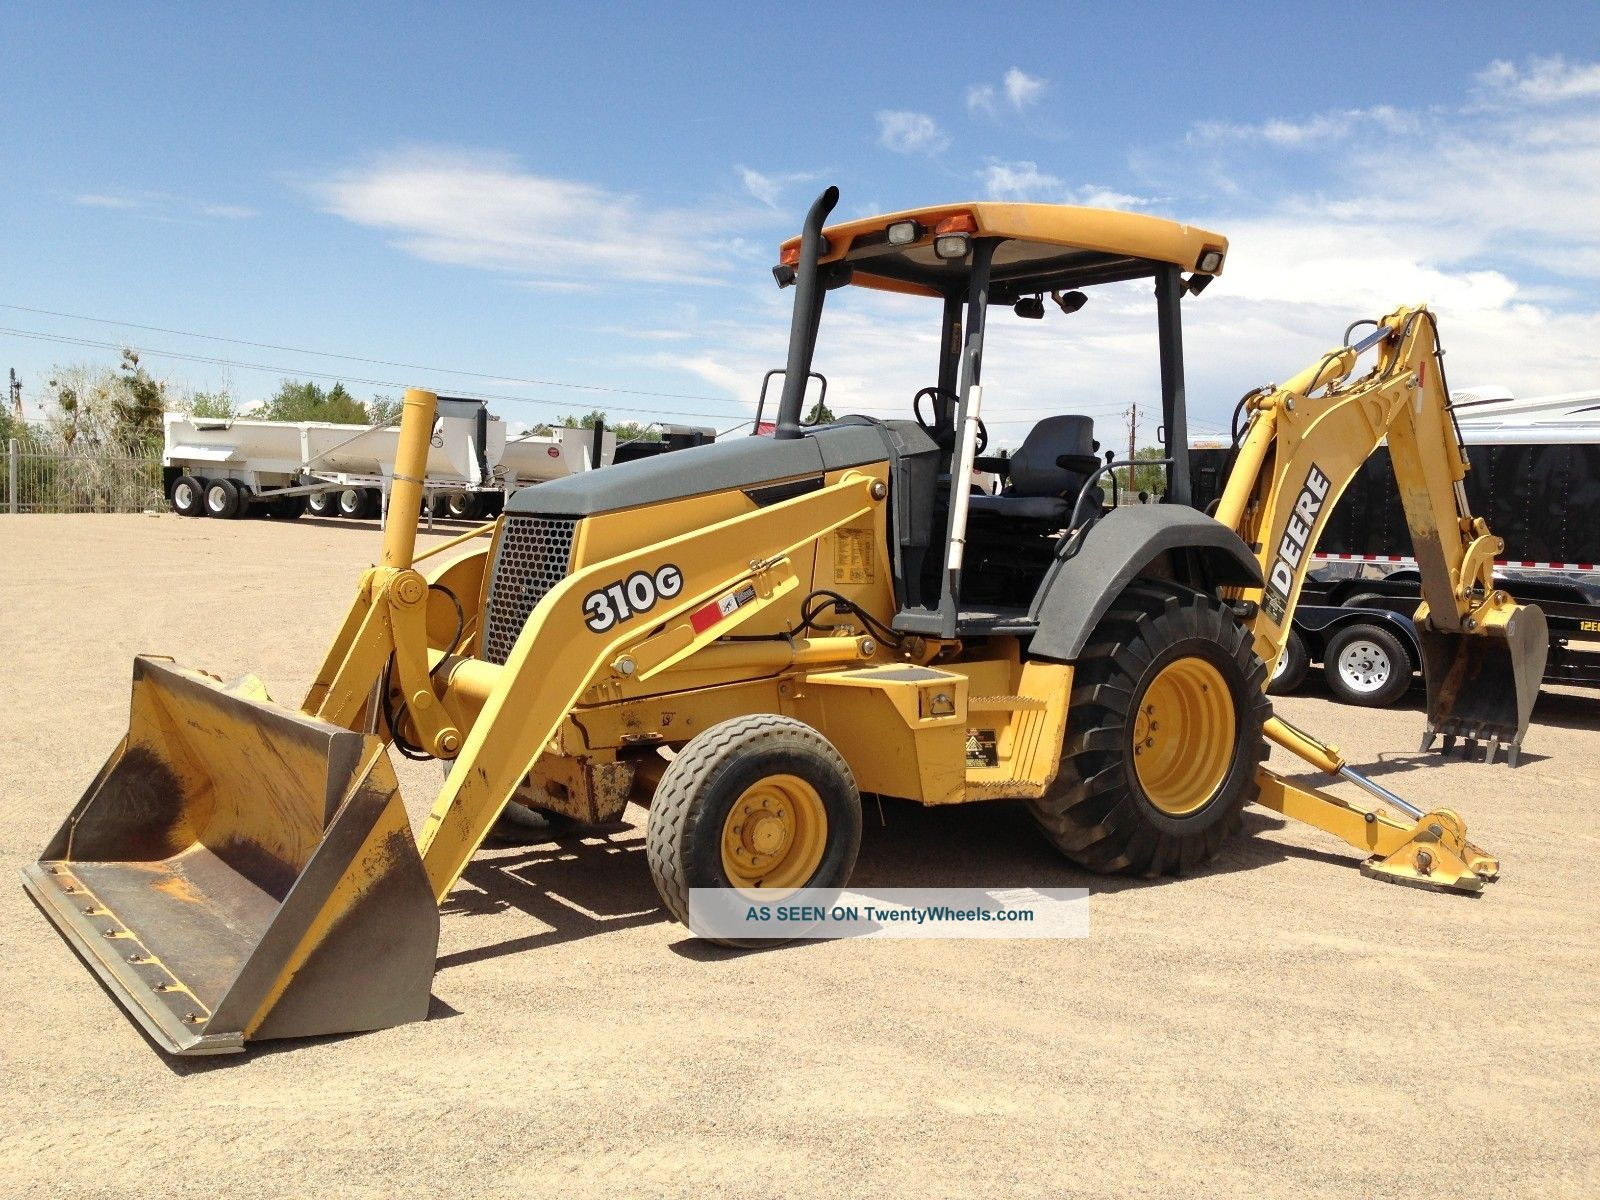 2003 John Deere 310g Backhoe - Recent Pm